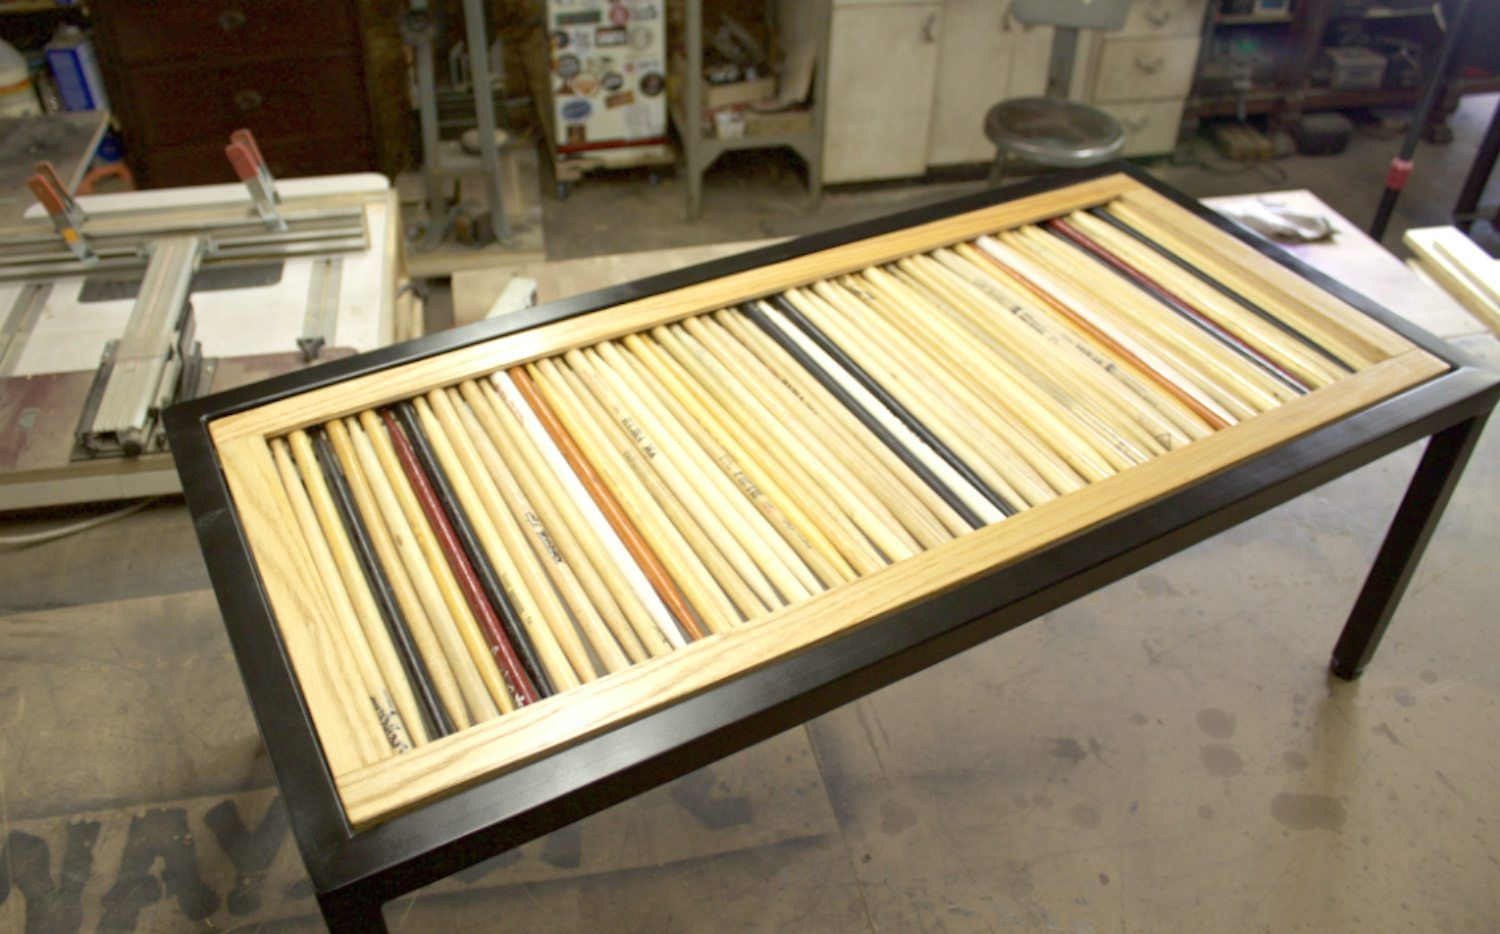 How To Make This Funky Diy Coffee Table With Old Drum Sticks Diy Coffee Table Coffee Table Drum Room [ 934 x 1500 Pixel ]